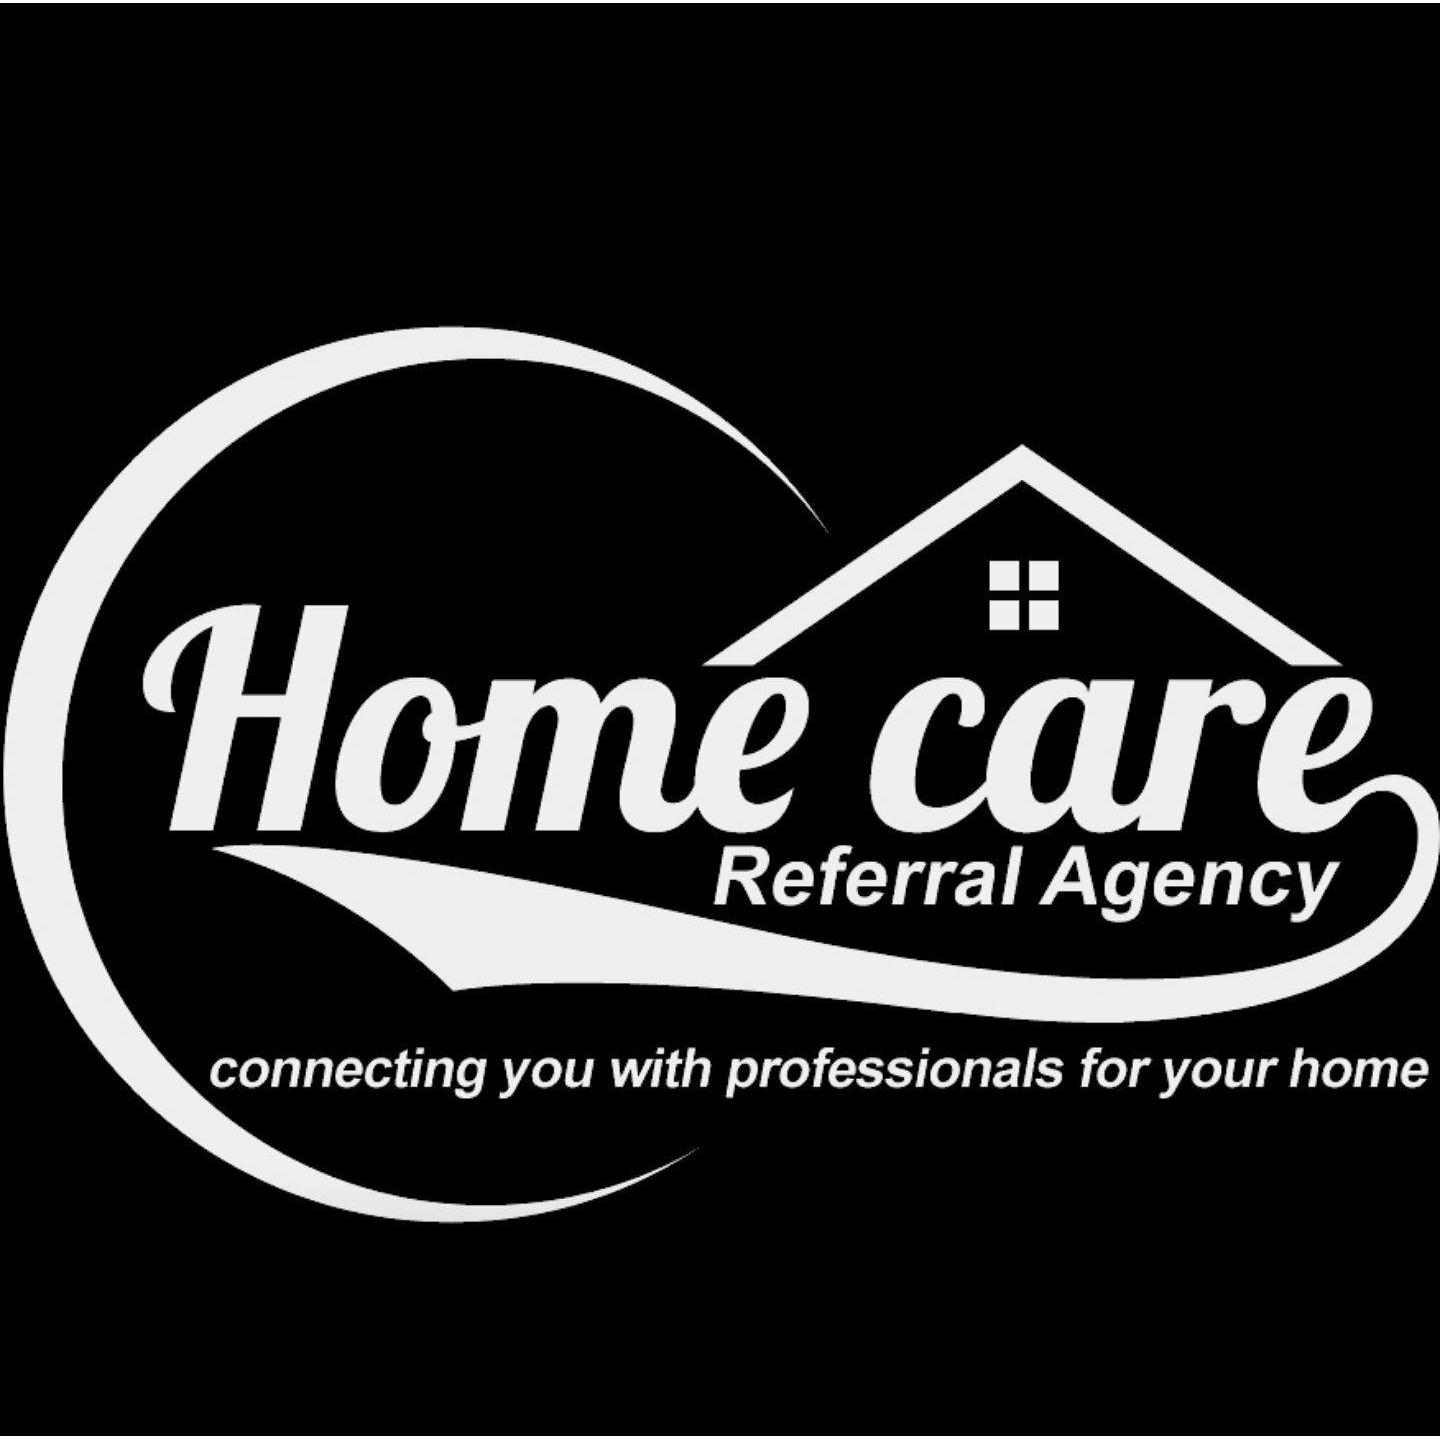 Home Care Referral Agency